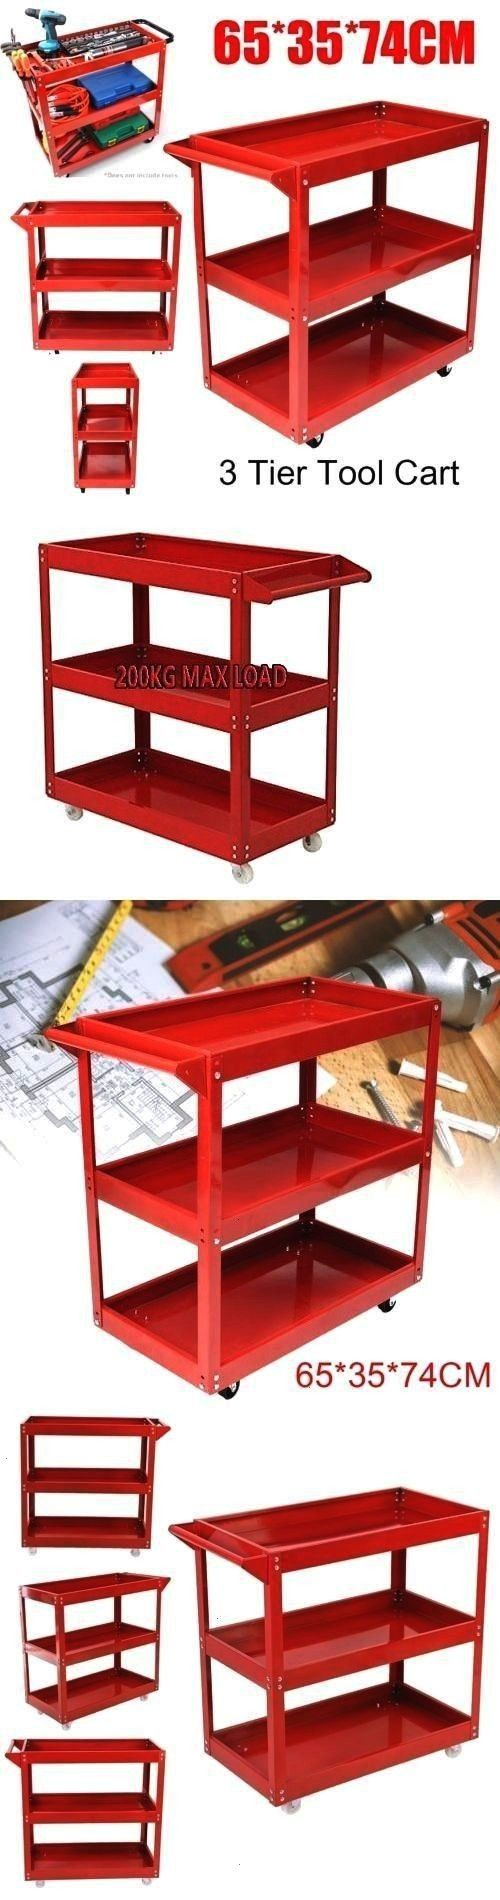 Tool Boxes 33089 3 Tier Heavy Duty Workshop Garage Mechanic Utility Trolley Service Tool Cart To  BUY IT NOW ONLY 4395 on Tool Boxes 33089 3 Tier Heavy Duty Workshop Gara...